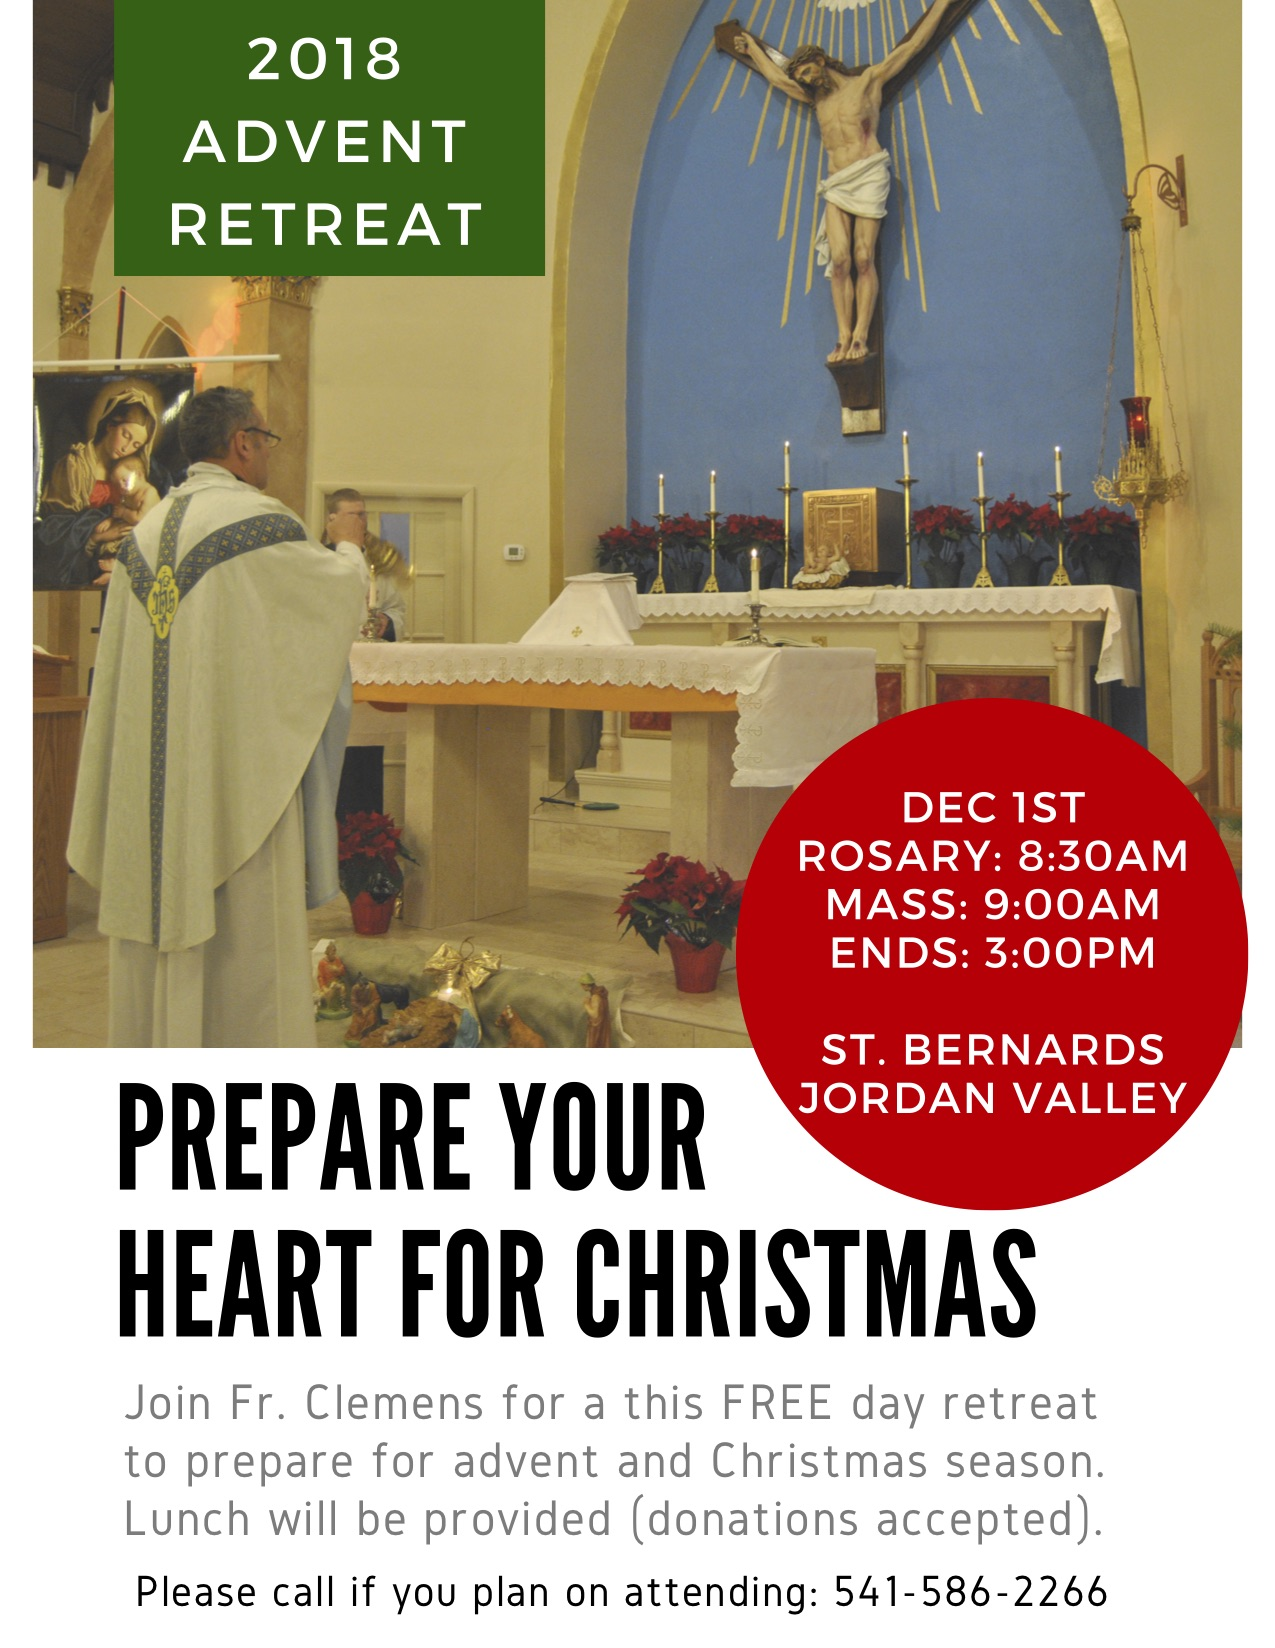 2018 Advent retreat